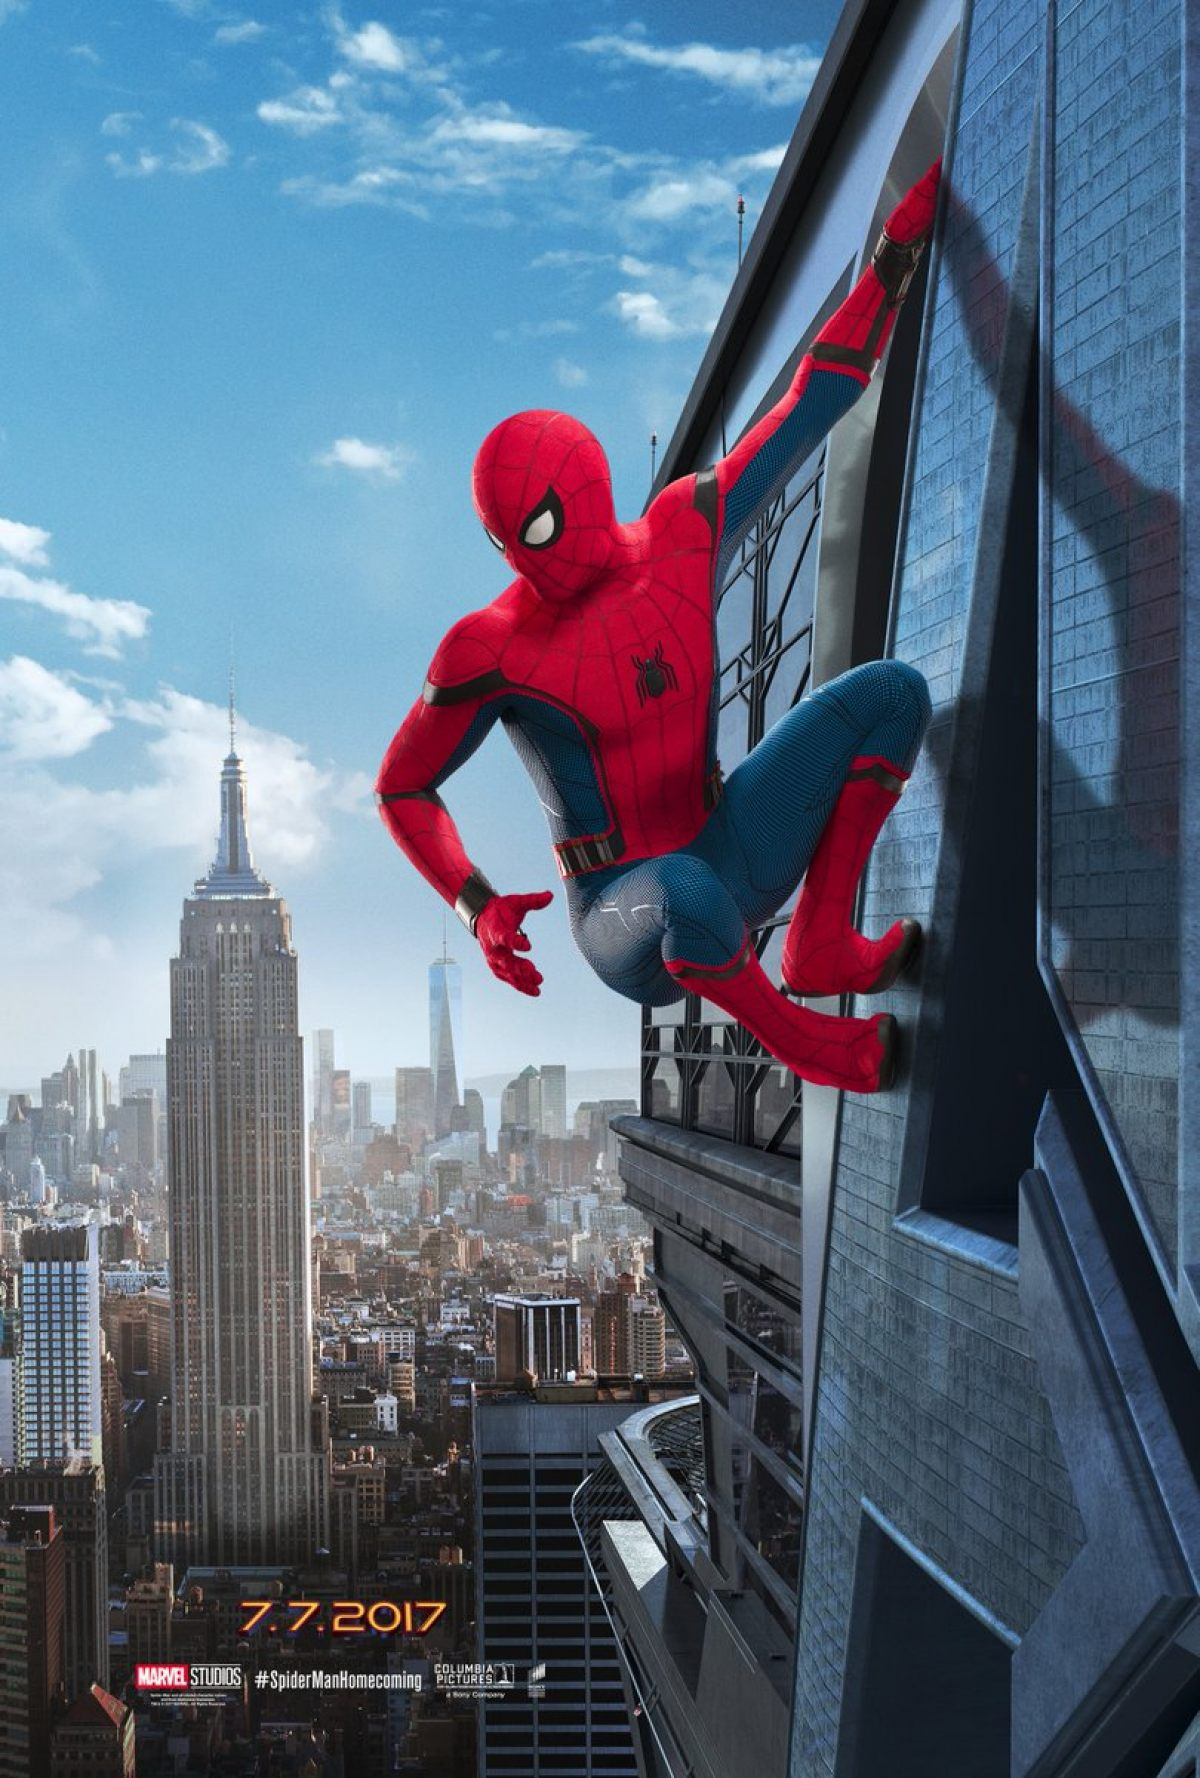 Spider-Man: Homecoming For mobile